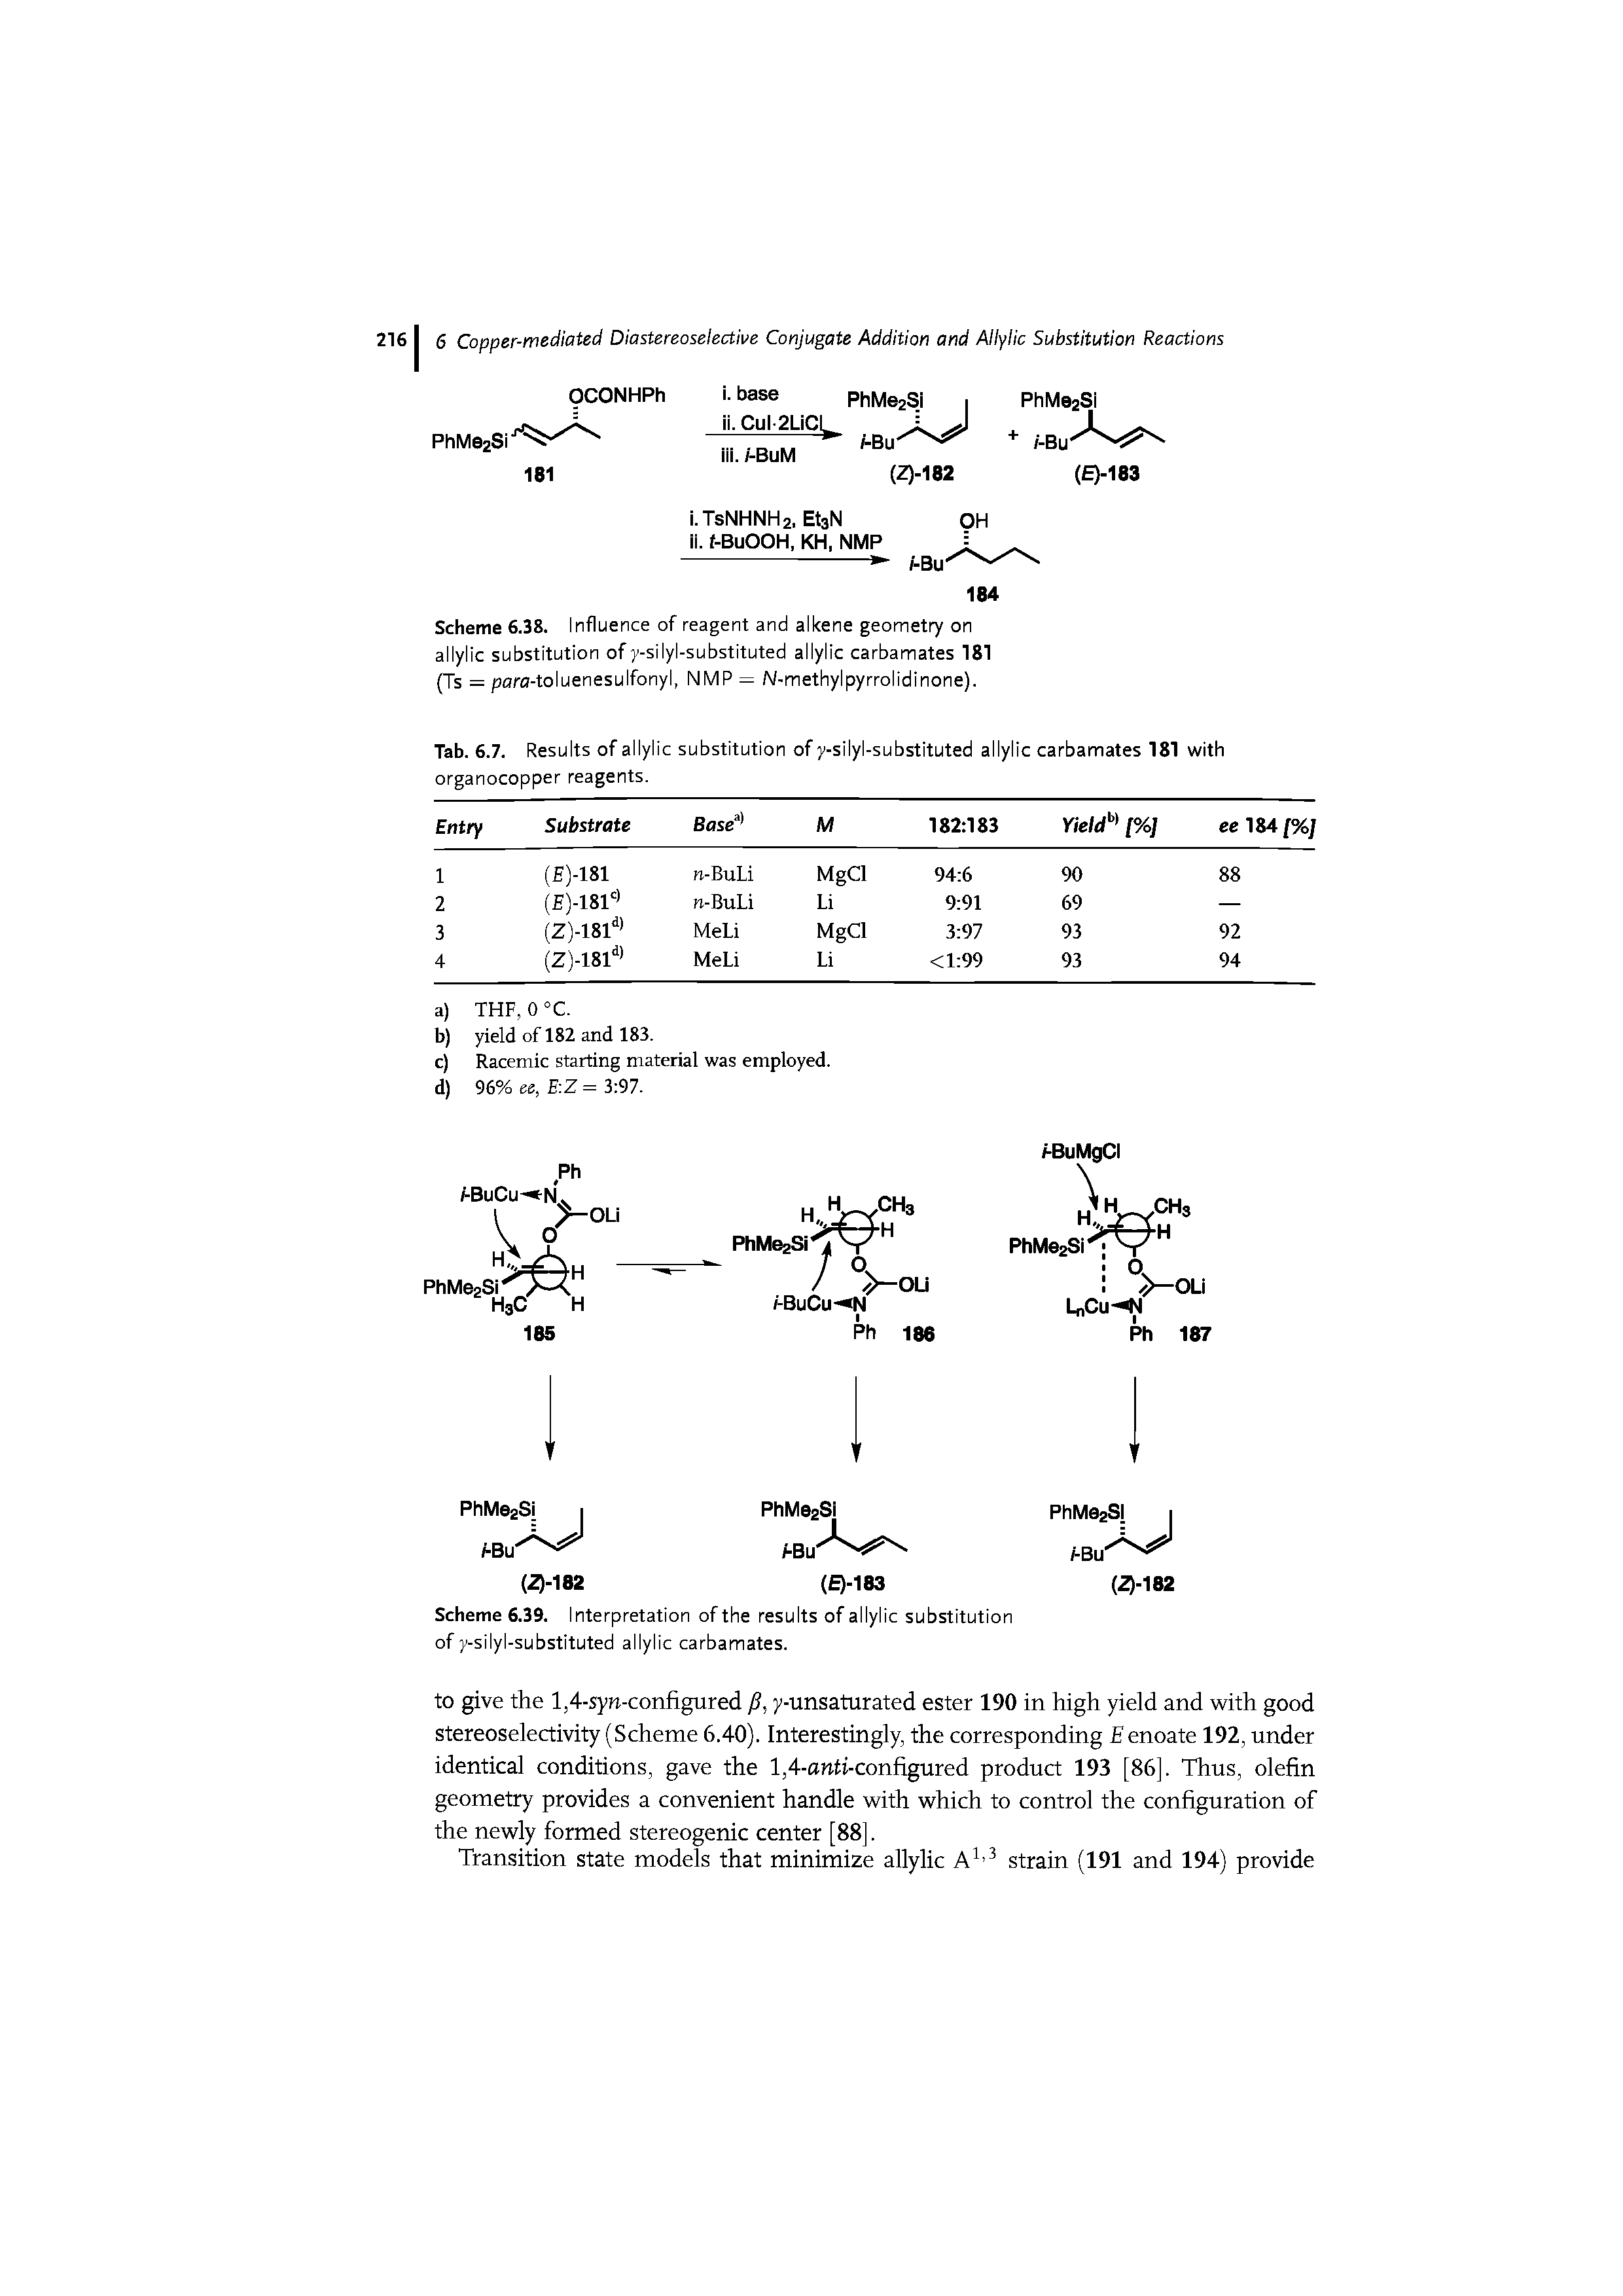 "Scheme 6.38. Influence of reagent and alkene geomet7 on <a href=""/info/allylic_substitution"">allylic substitution</a> of y-silyl-<a href=""/info/allyl_carbamates_substitution"">substituted allylic carbamates</a> 181 (Ts = para-toluenesulfonyl, NMP = N-methylpyrrolidinone)."